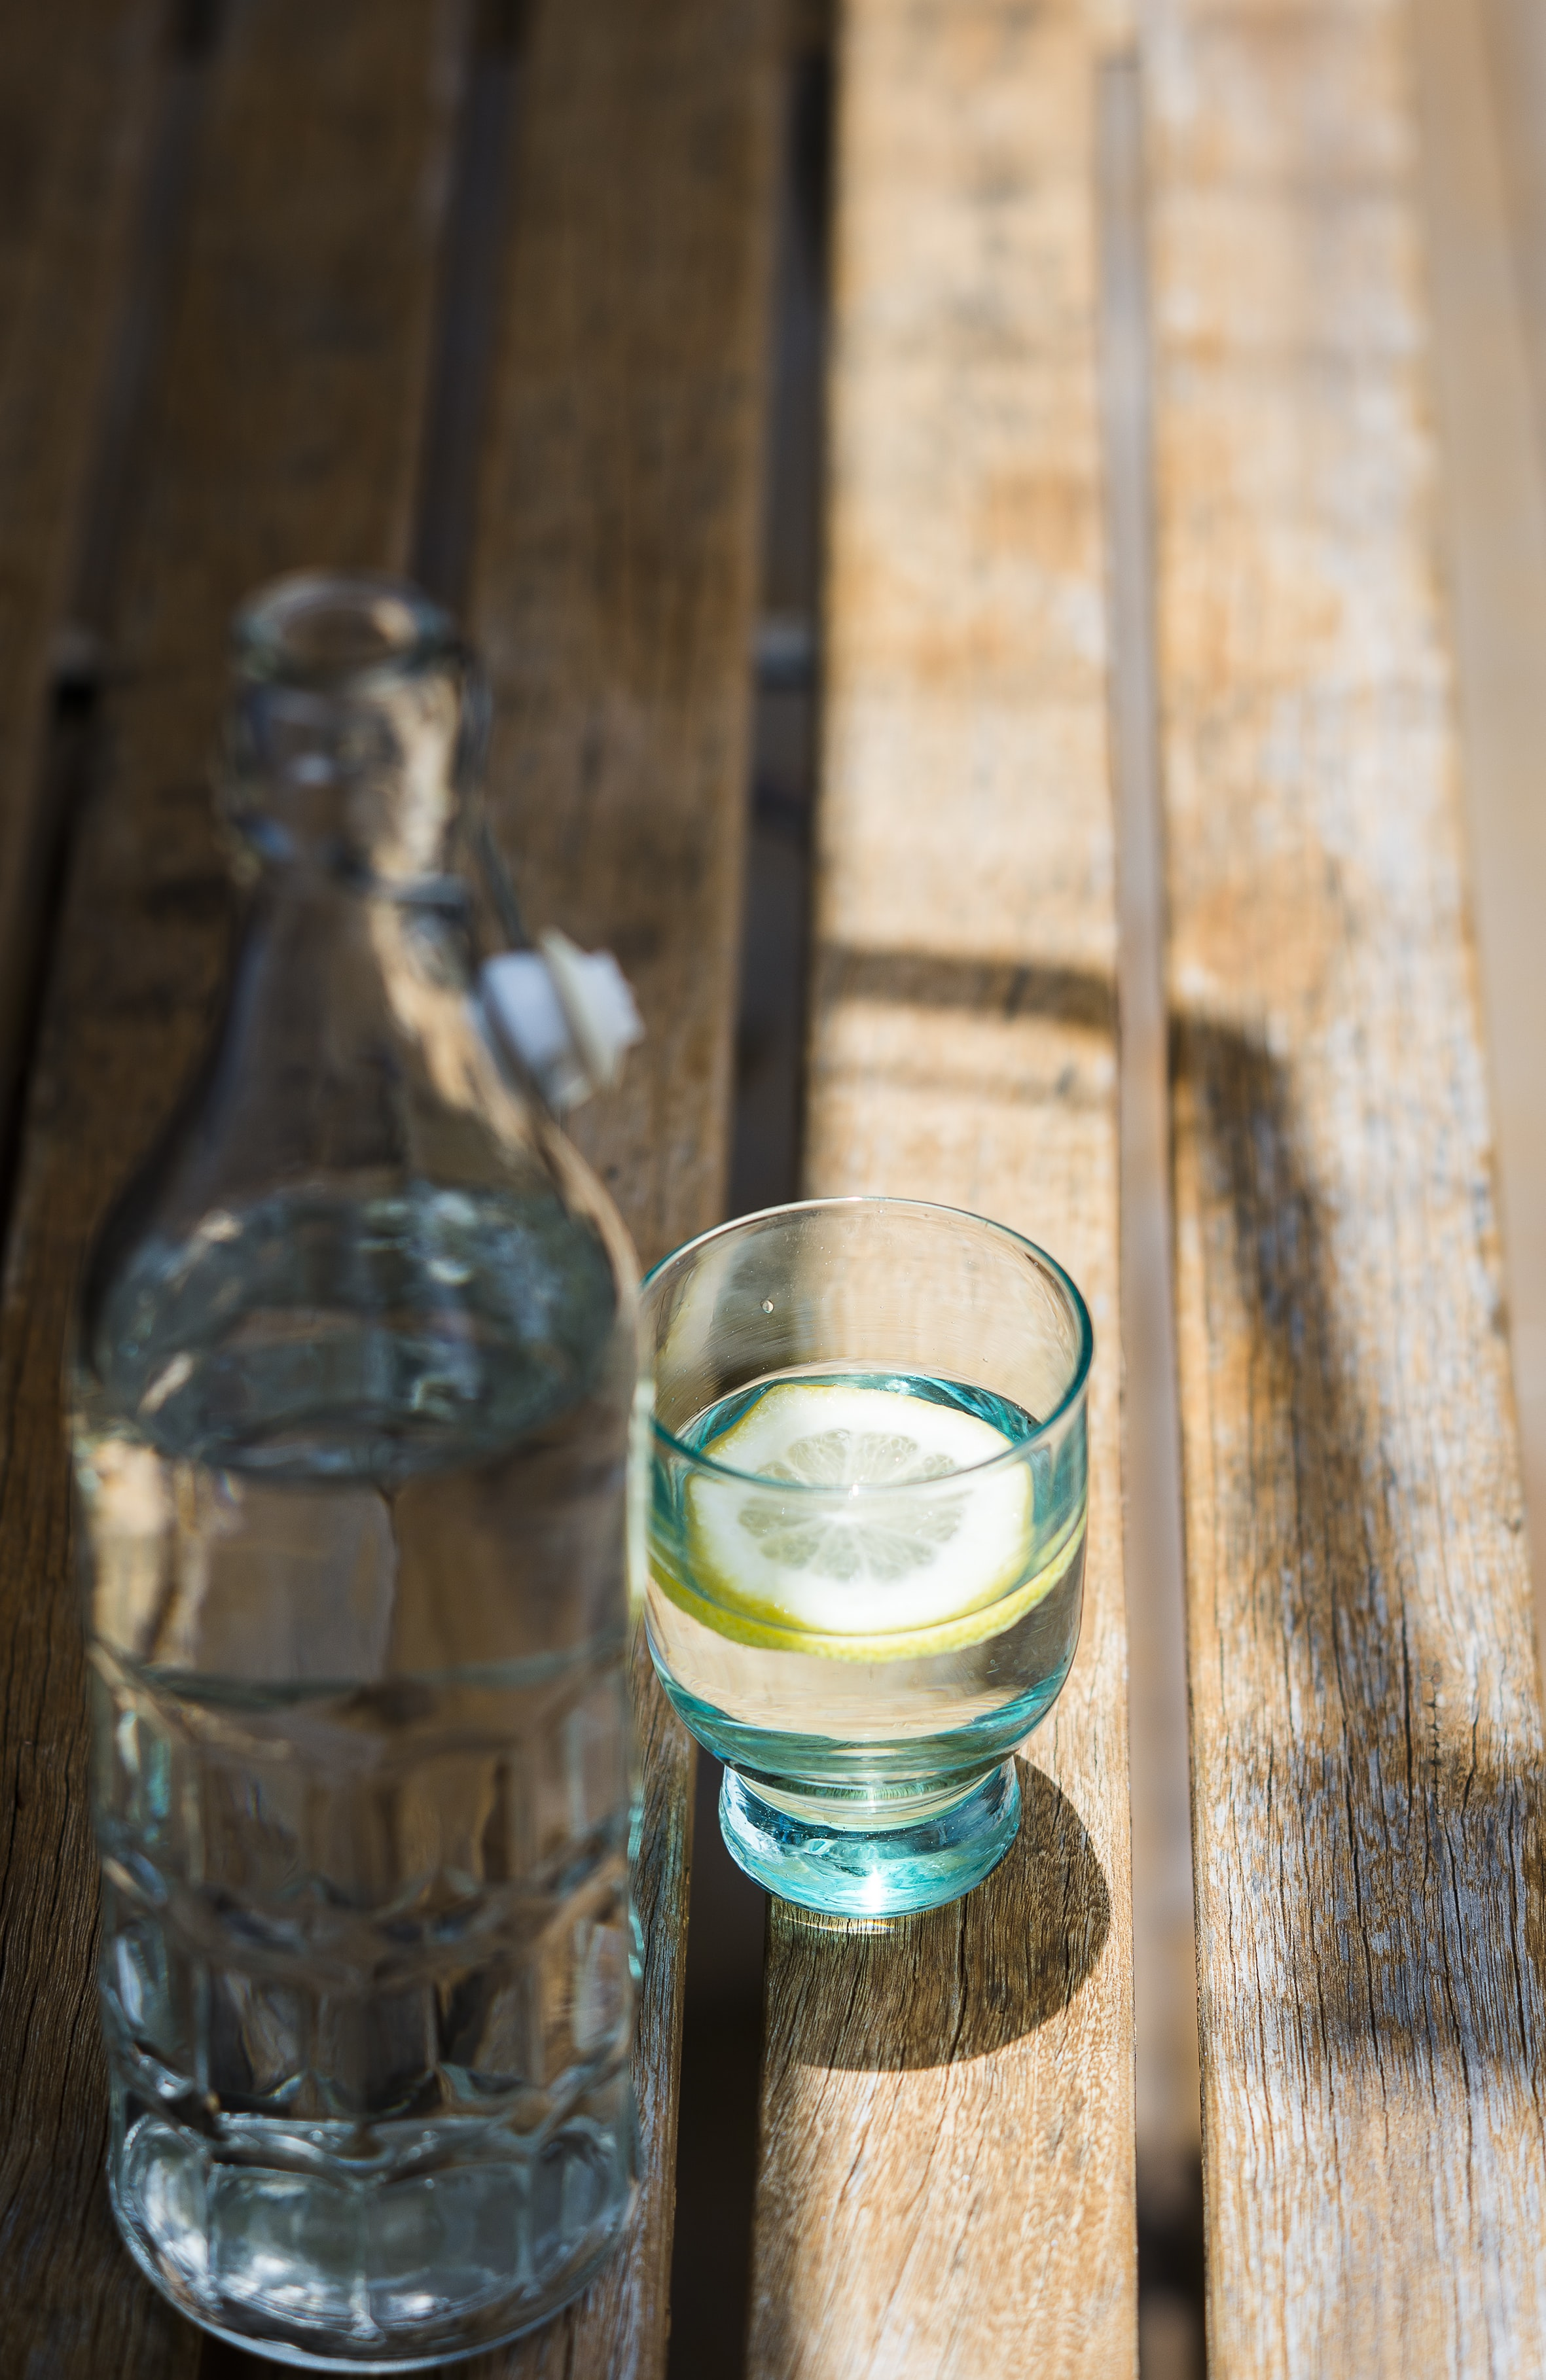 liquor in rock glass and bottle